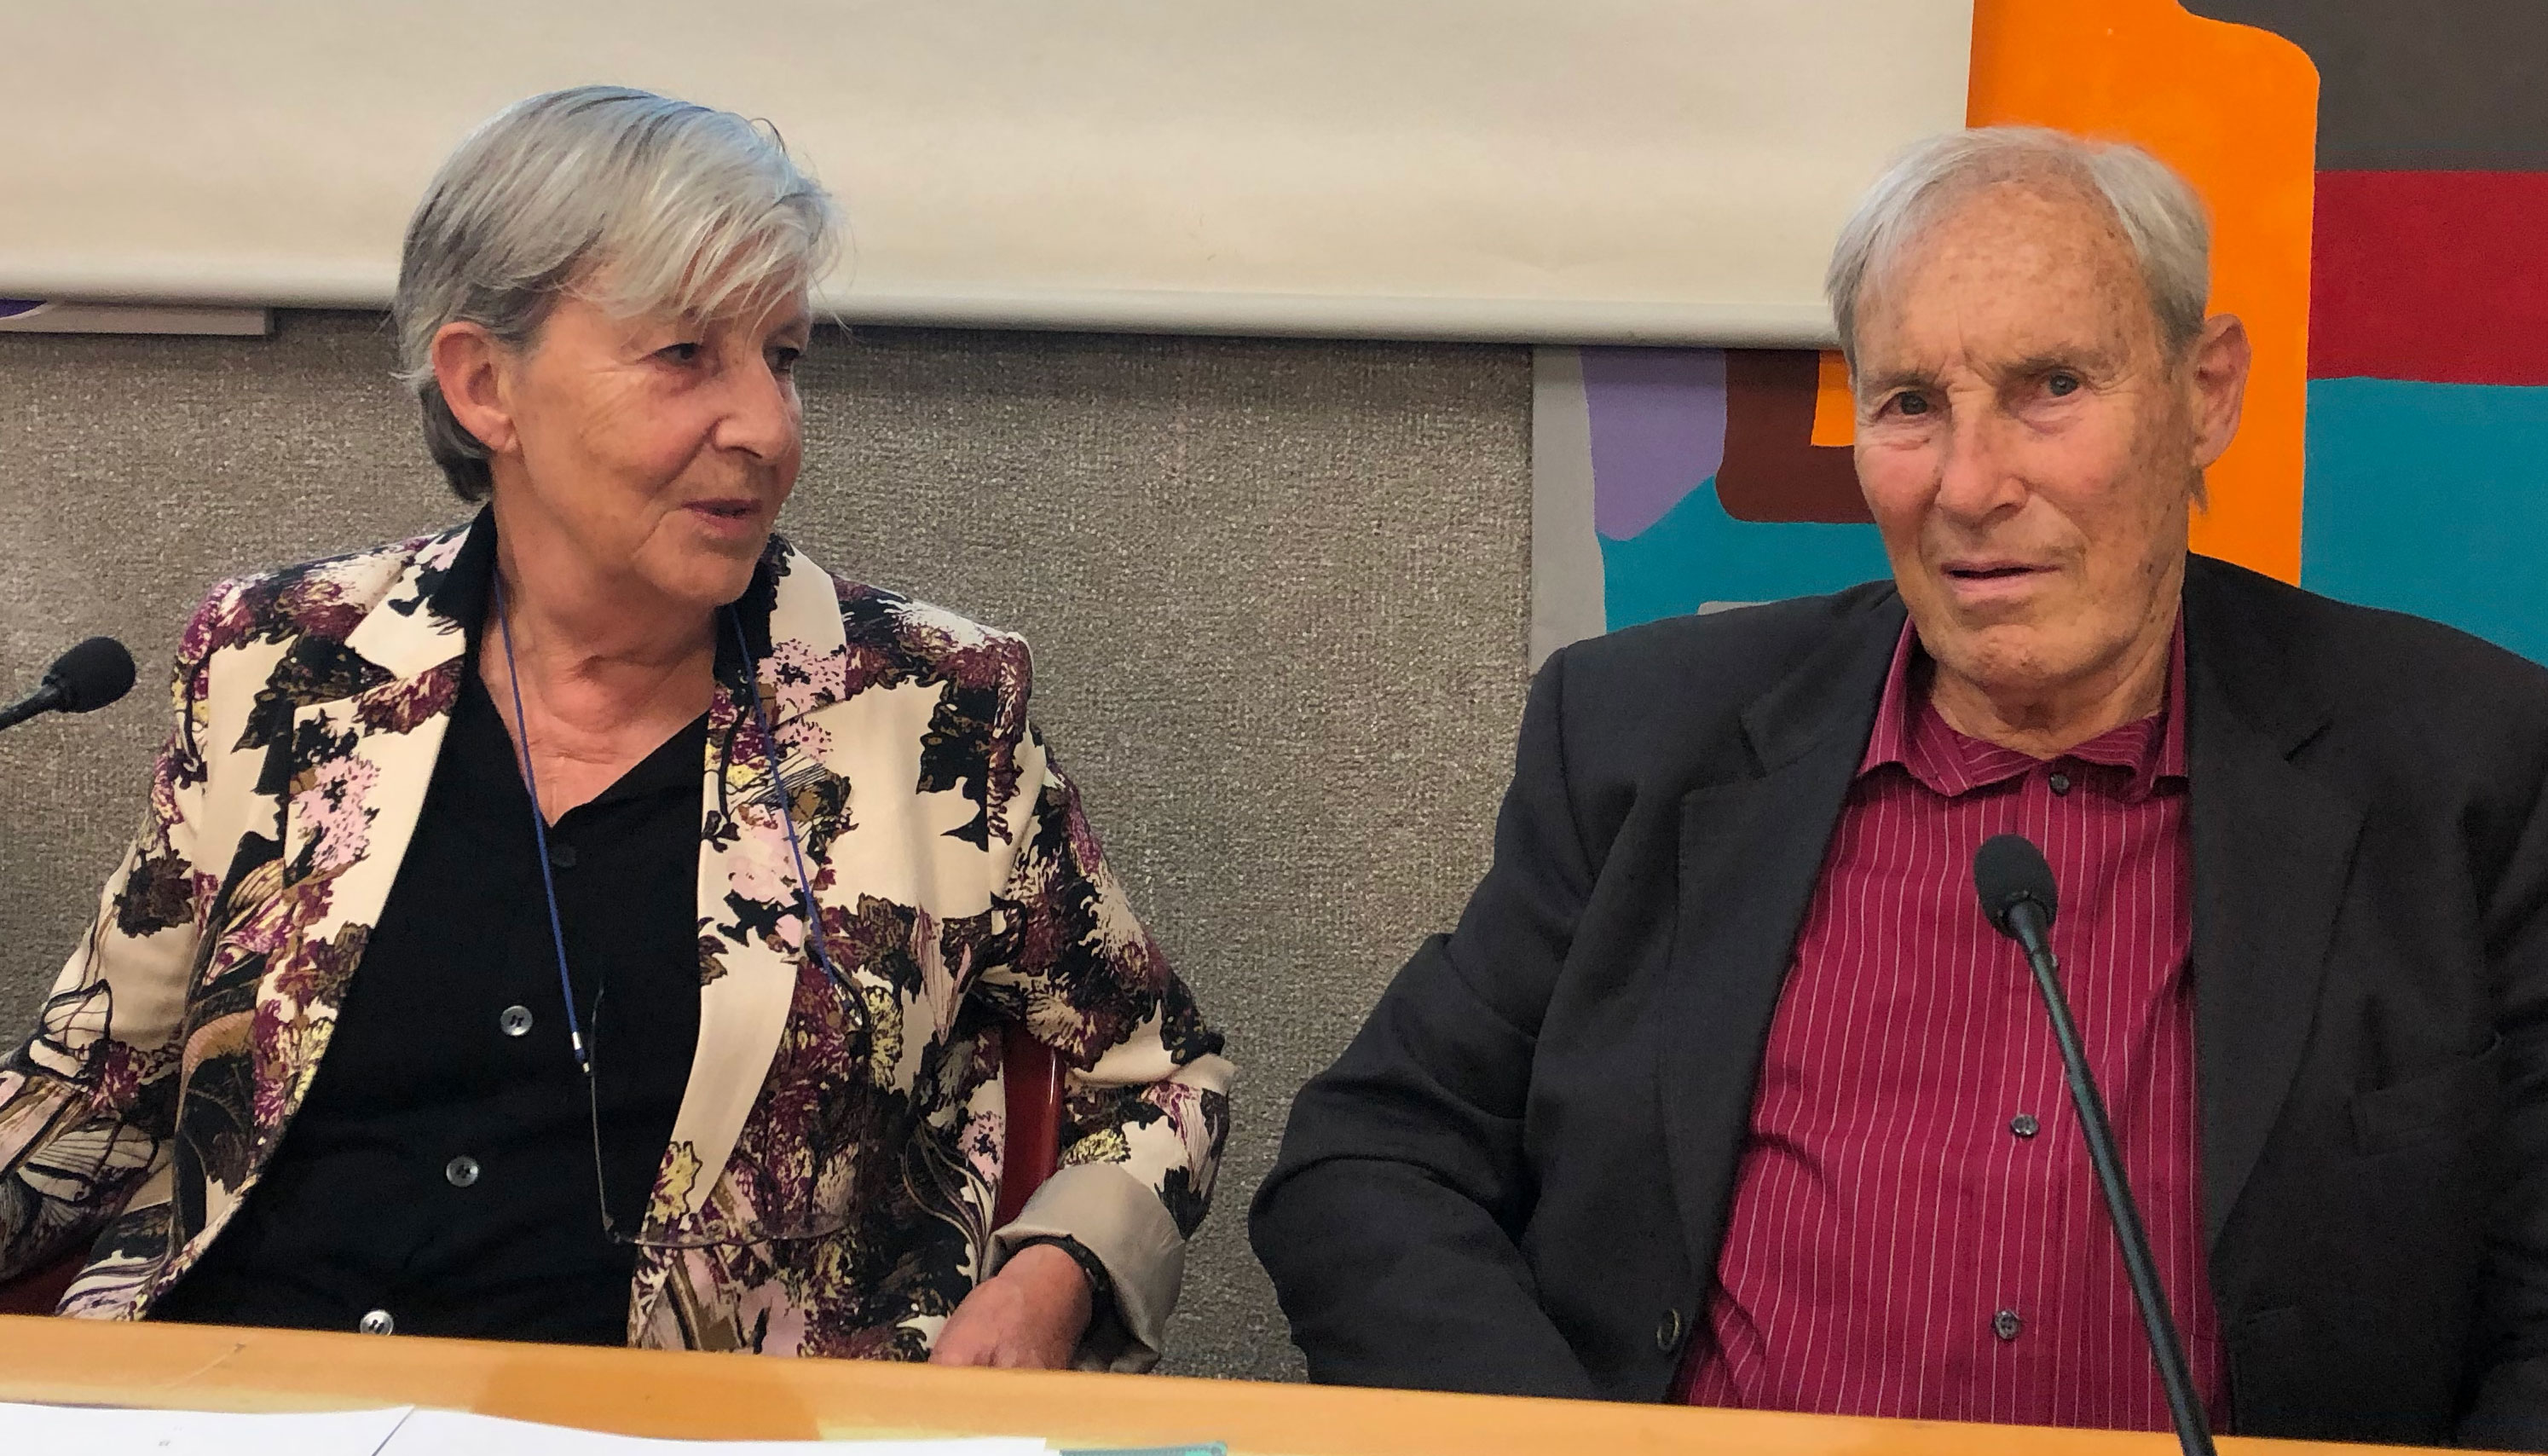 Italian and German Scholars Discuss Legacy of Writer and Eyewitness of Armenian Genocide Armin T. Wegner